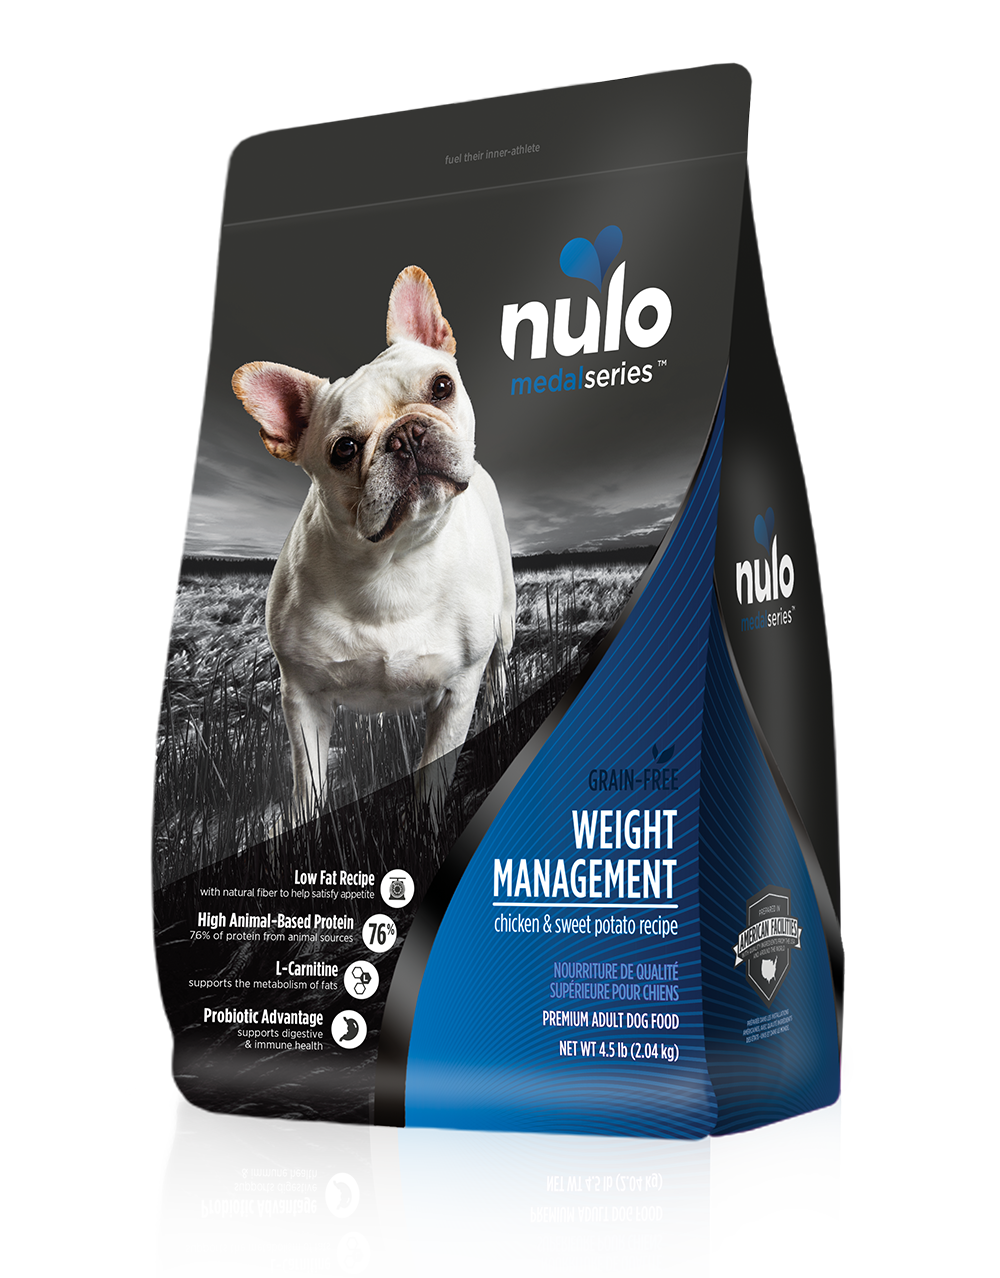 Dog Food | Nulo Pet Food